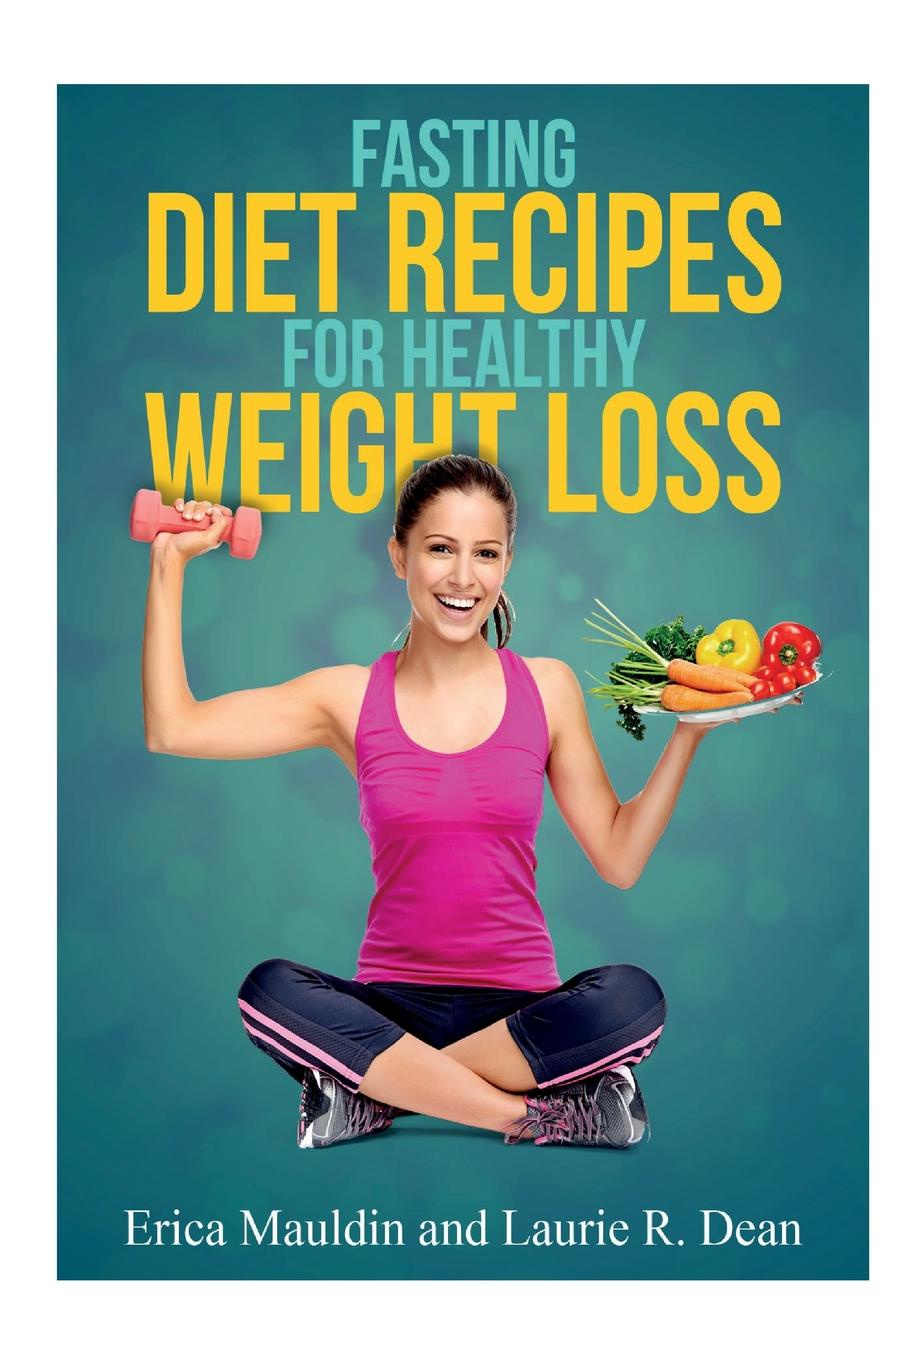 Erica Mauldin, Laurie R. Dean Fasting Diet. Diet Recipes for Healthy Weight Loss